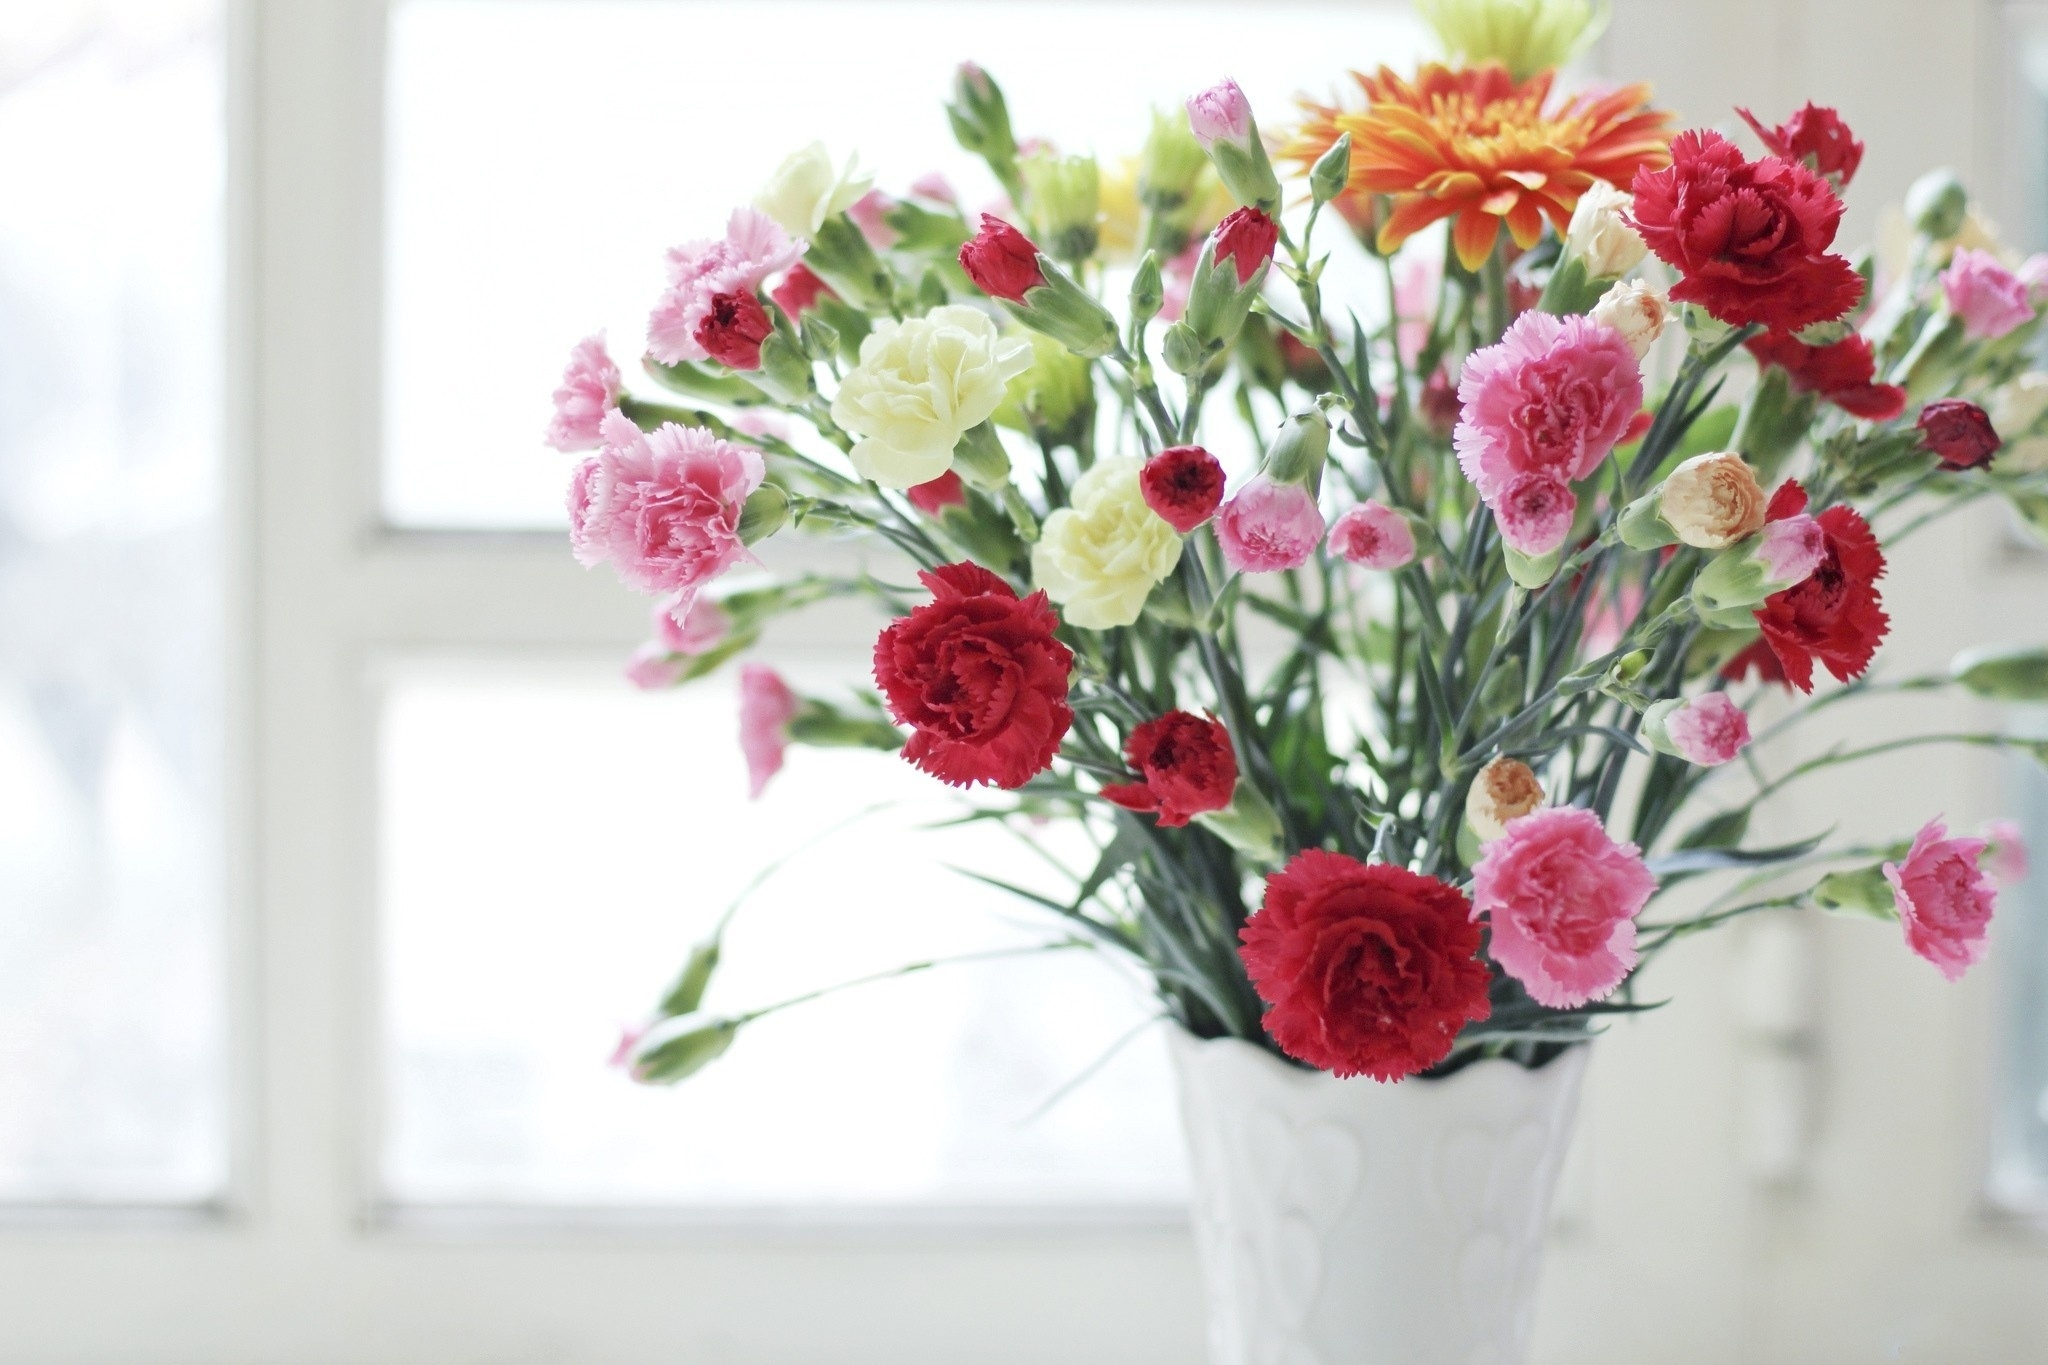 carnation high quality wallpapers